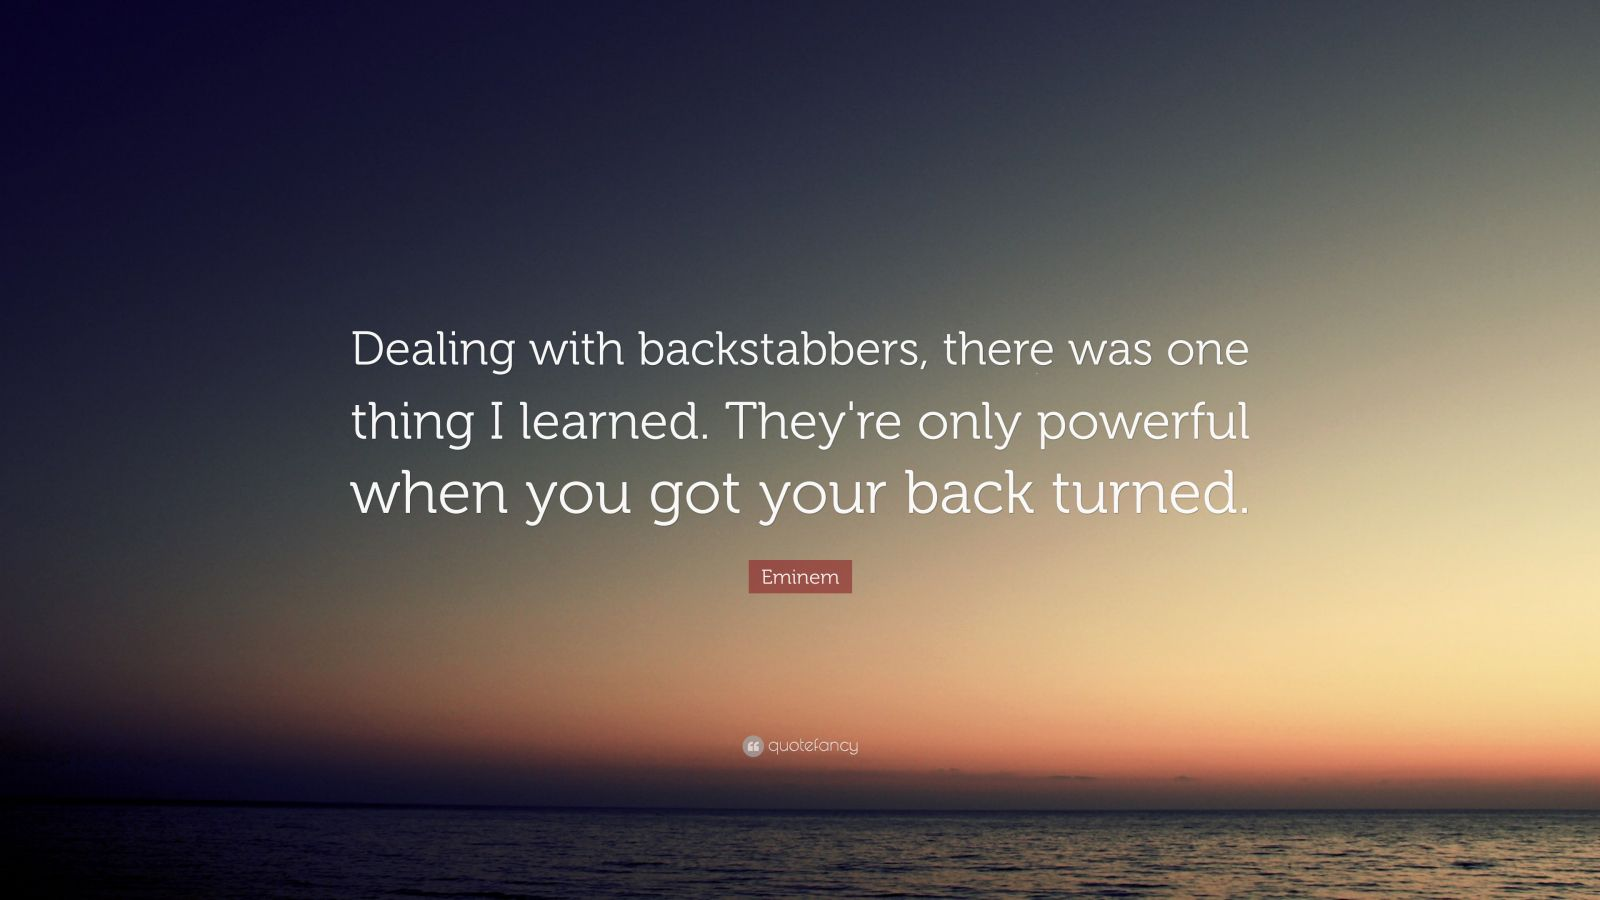 Eminem Quote Dealing With Backstabbers There Was One Thing I Learned They Re Only Powerful